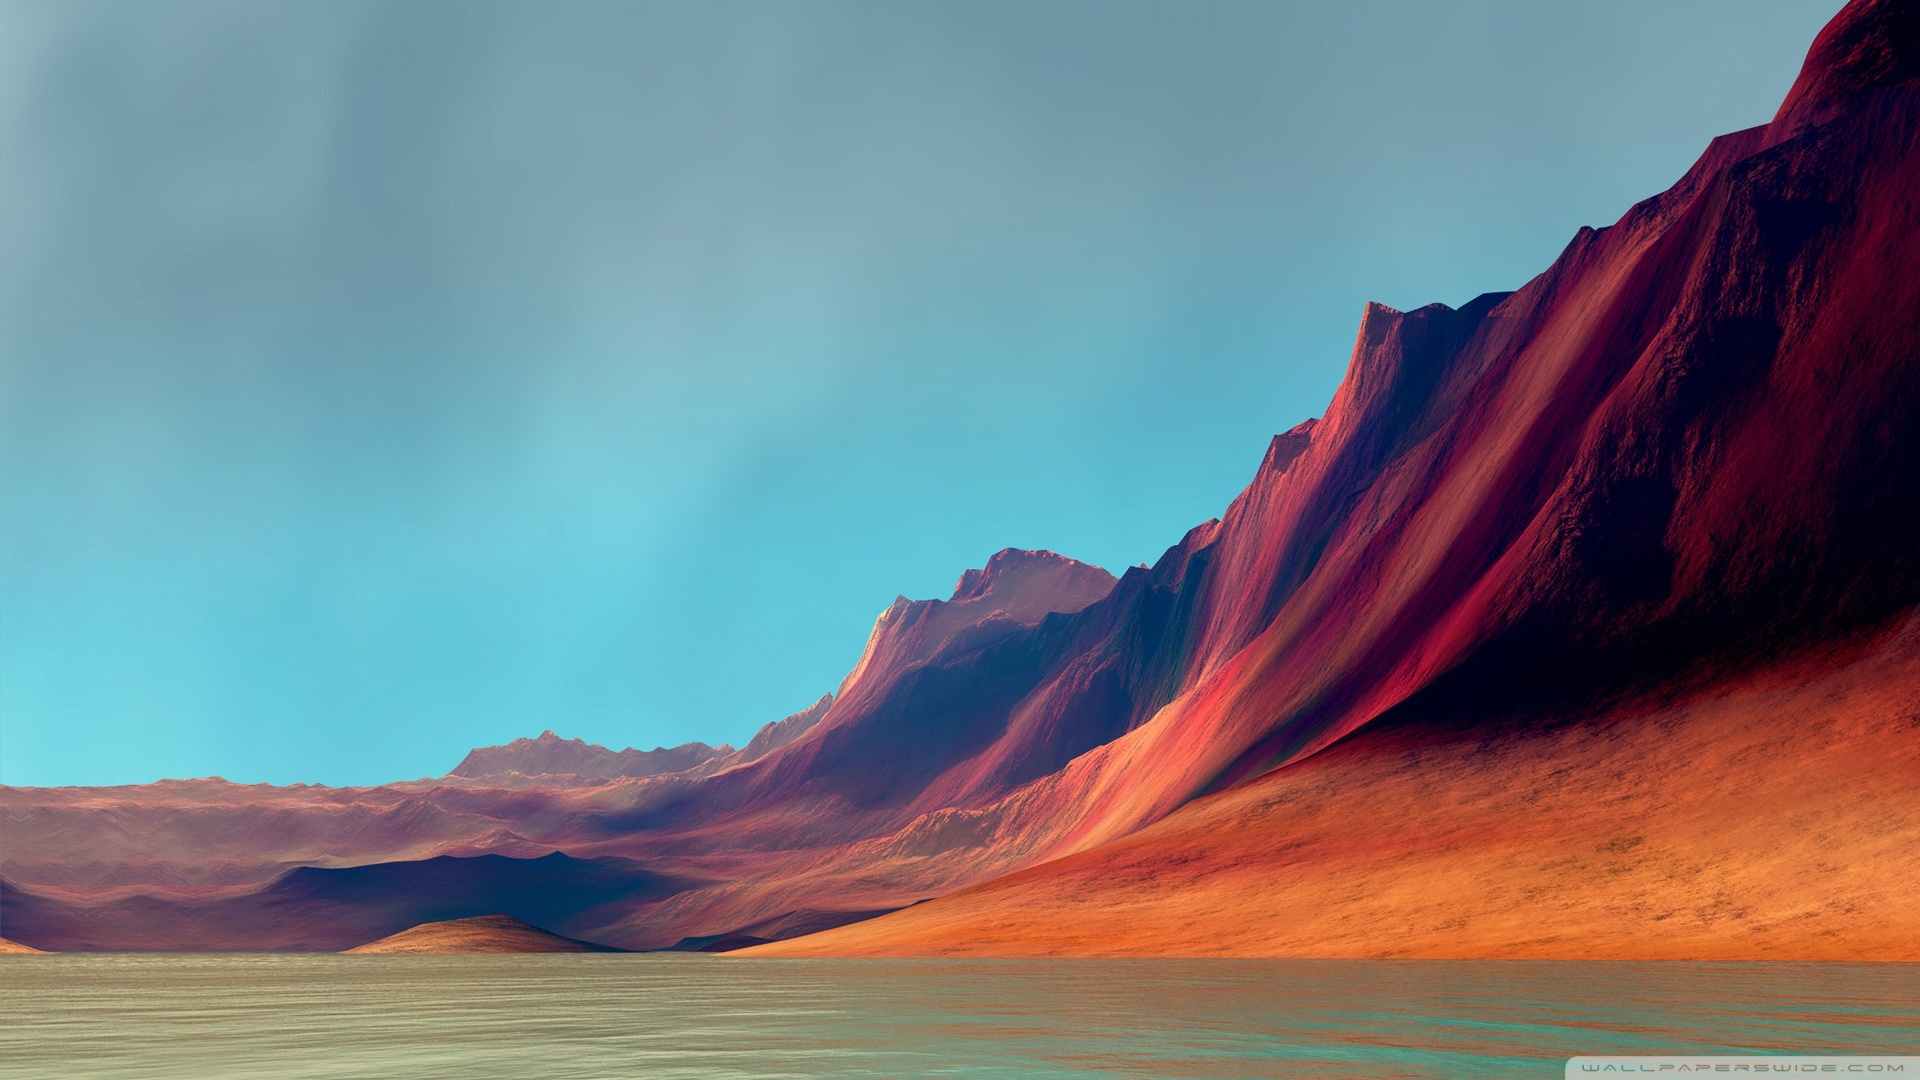 Download Free WallpaperRed Mountains   Flex